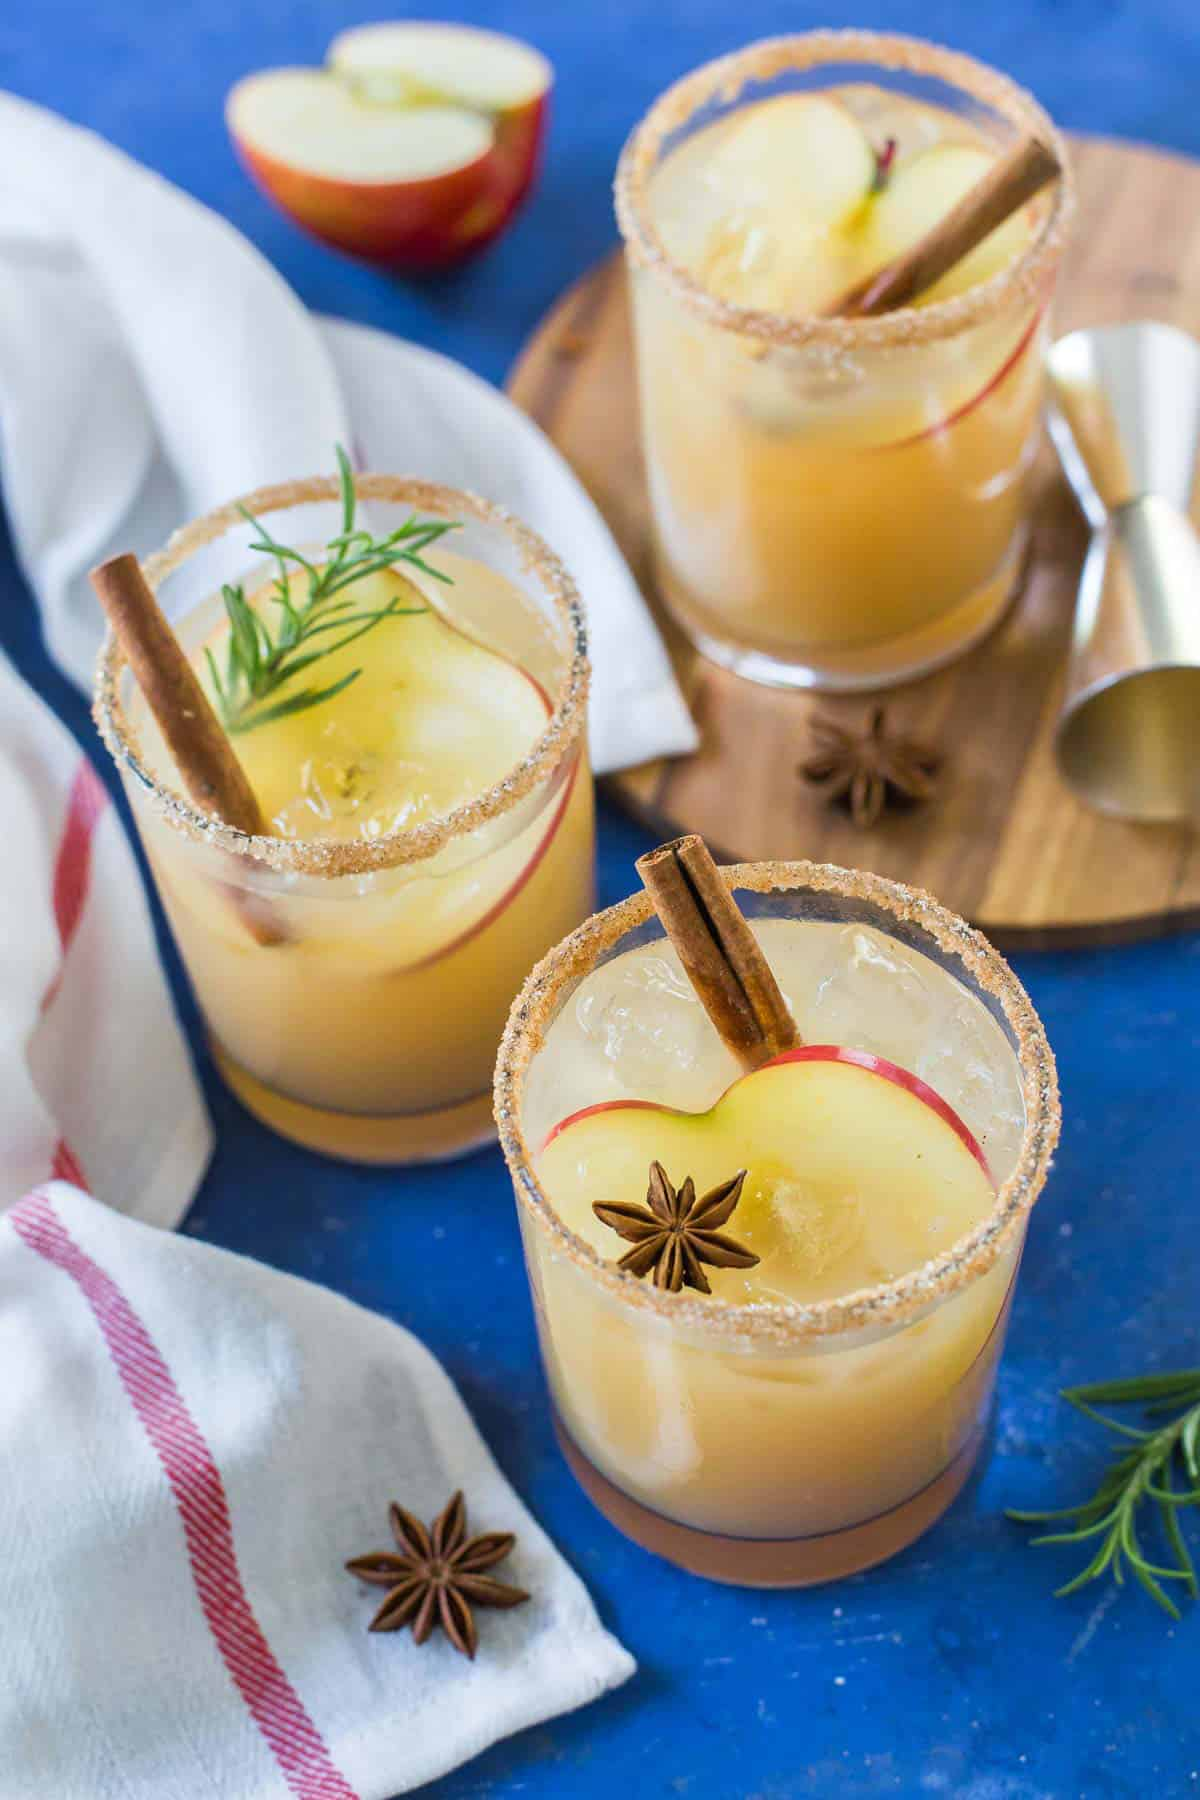 Three Apple Cider Margaritas sit on a blue background